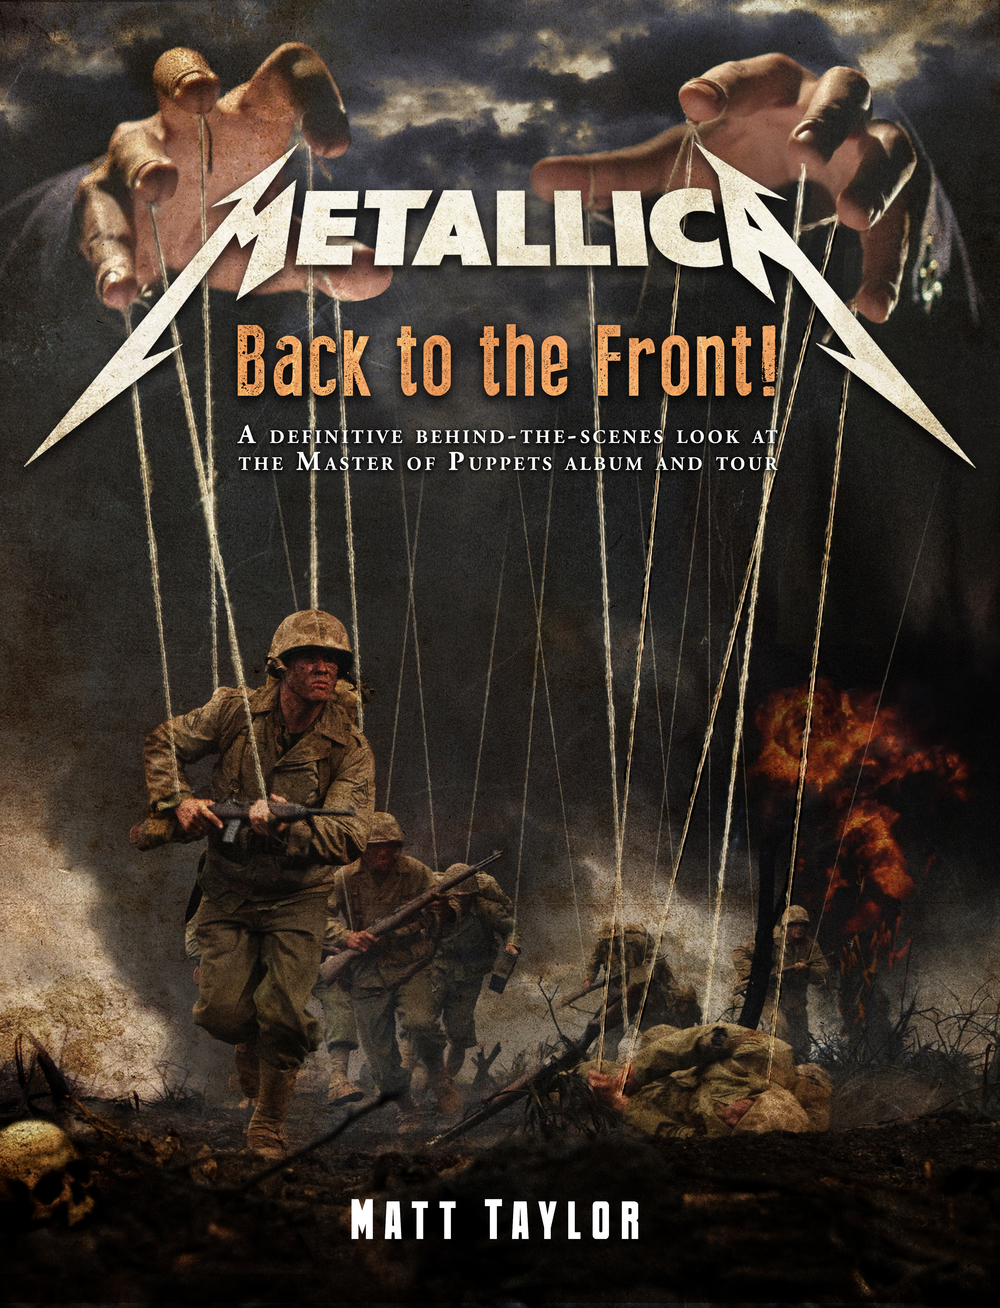 METALLICA COVER MOCK UP FINAL2.jpg